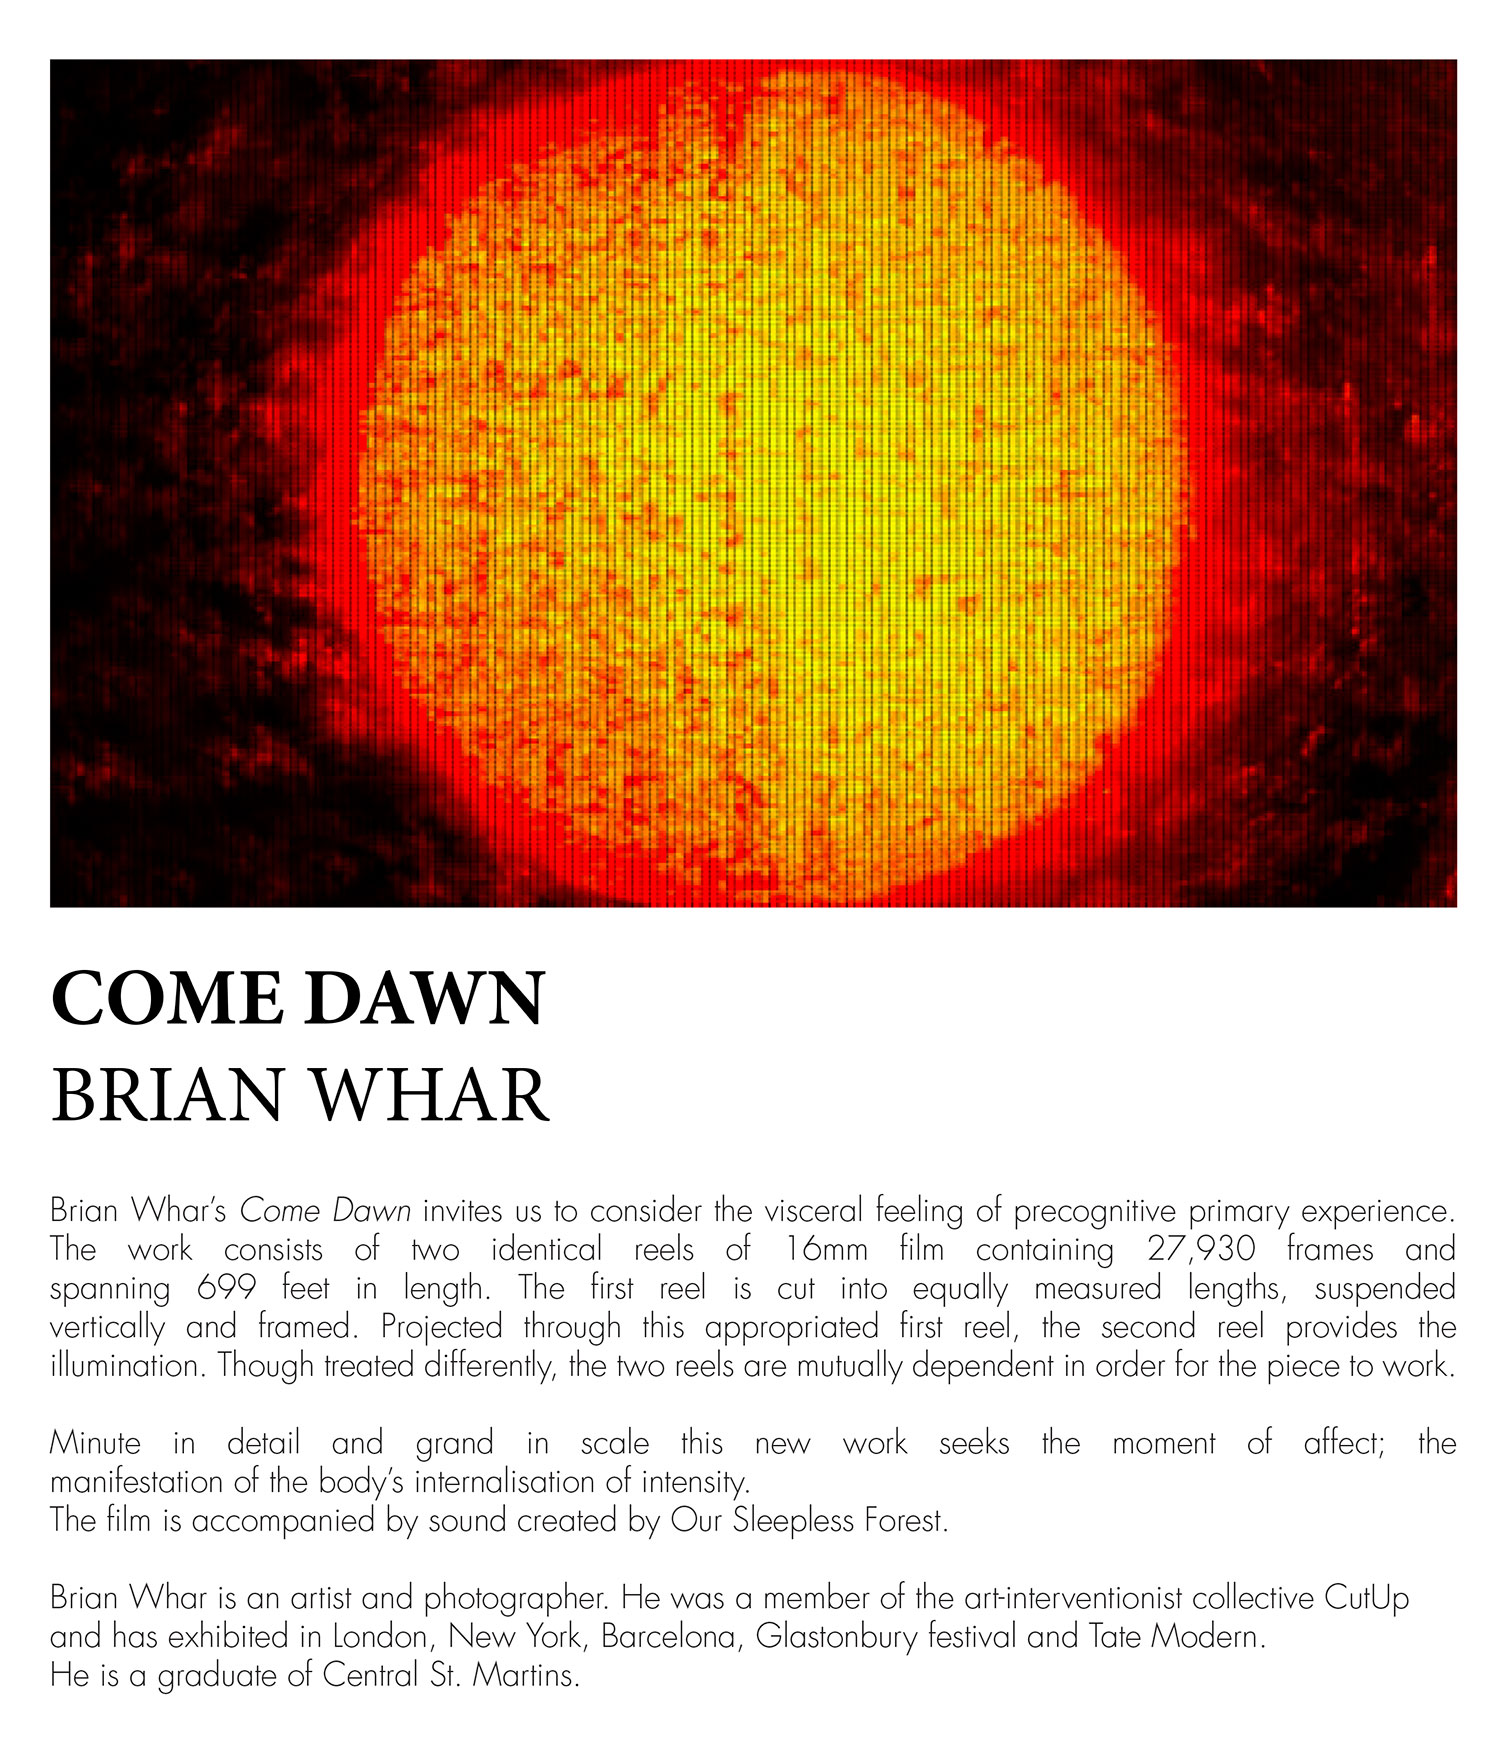 03_COME-DAWN-PRESS-RELEASE.jpg